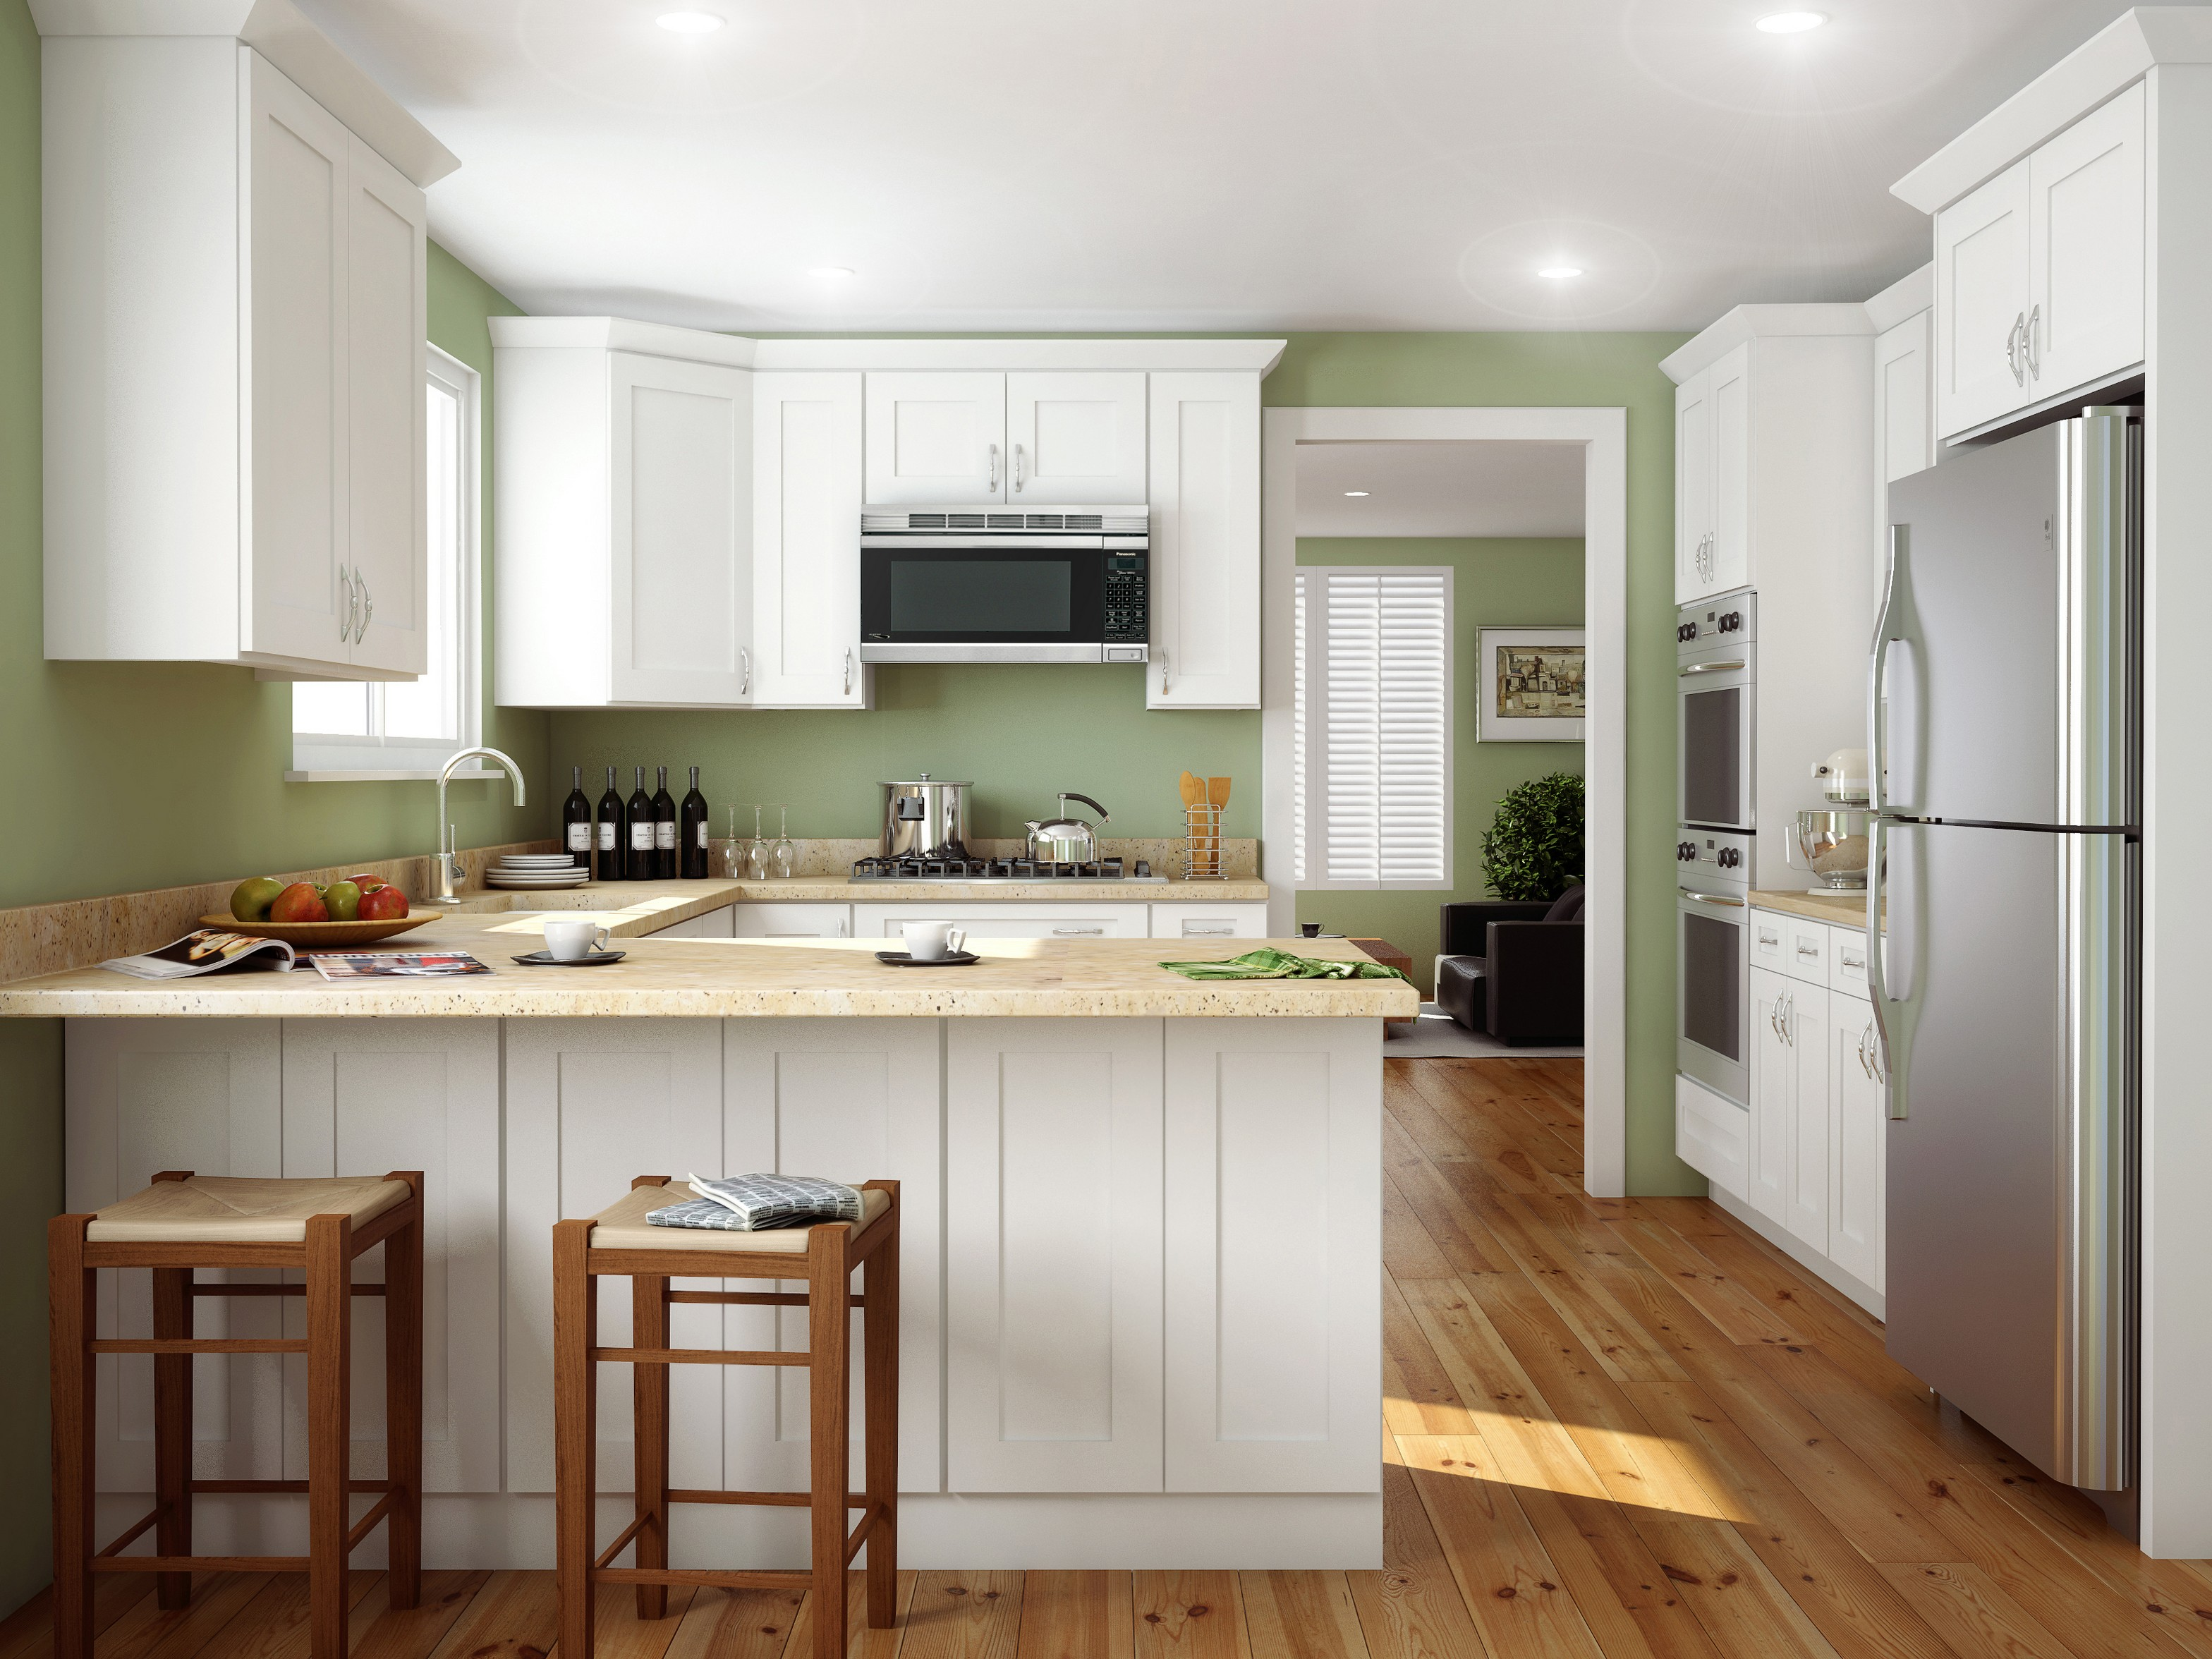 the shaker design style a true american classic shaker style kitchen cabinets Simple Shaker style kitchen with a contemporary twist Featuring our Ice White Shaker kitchen